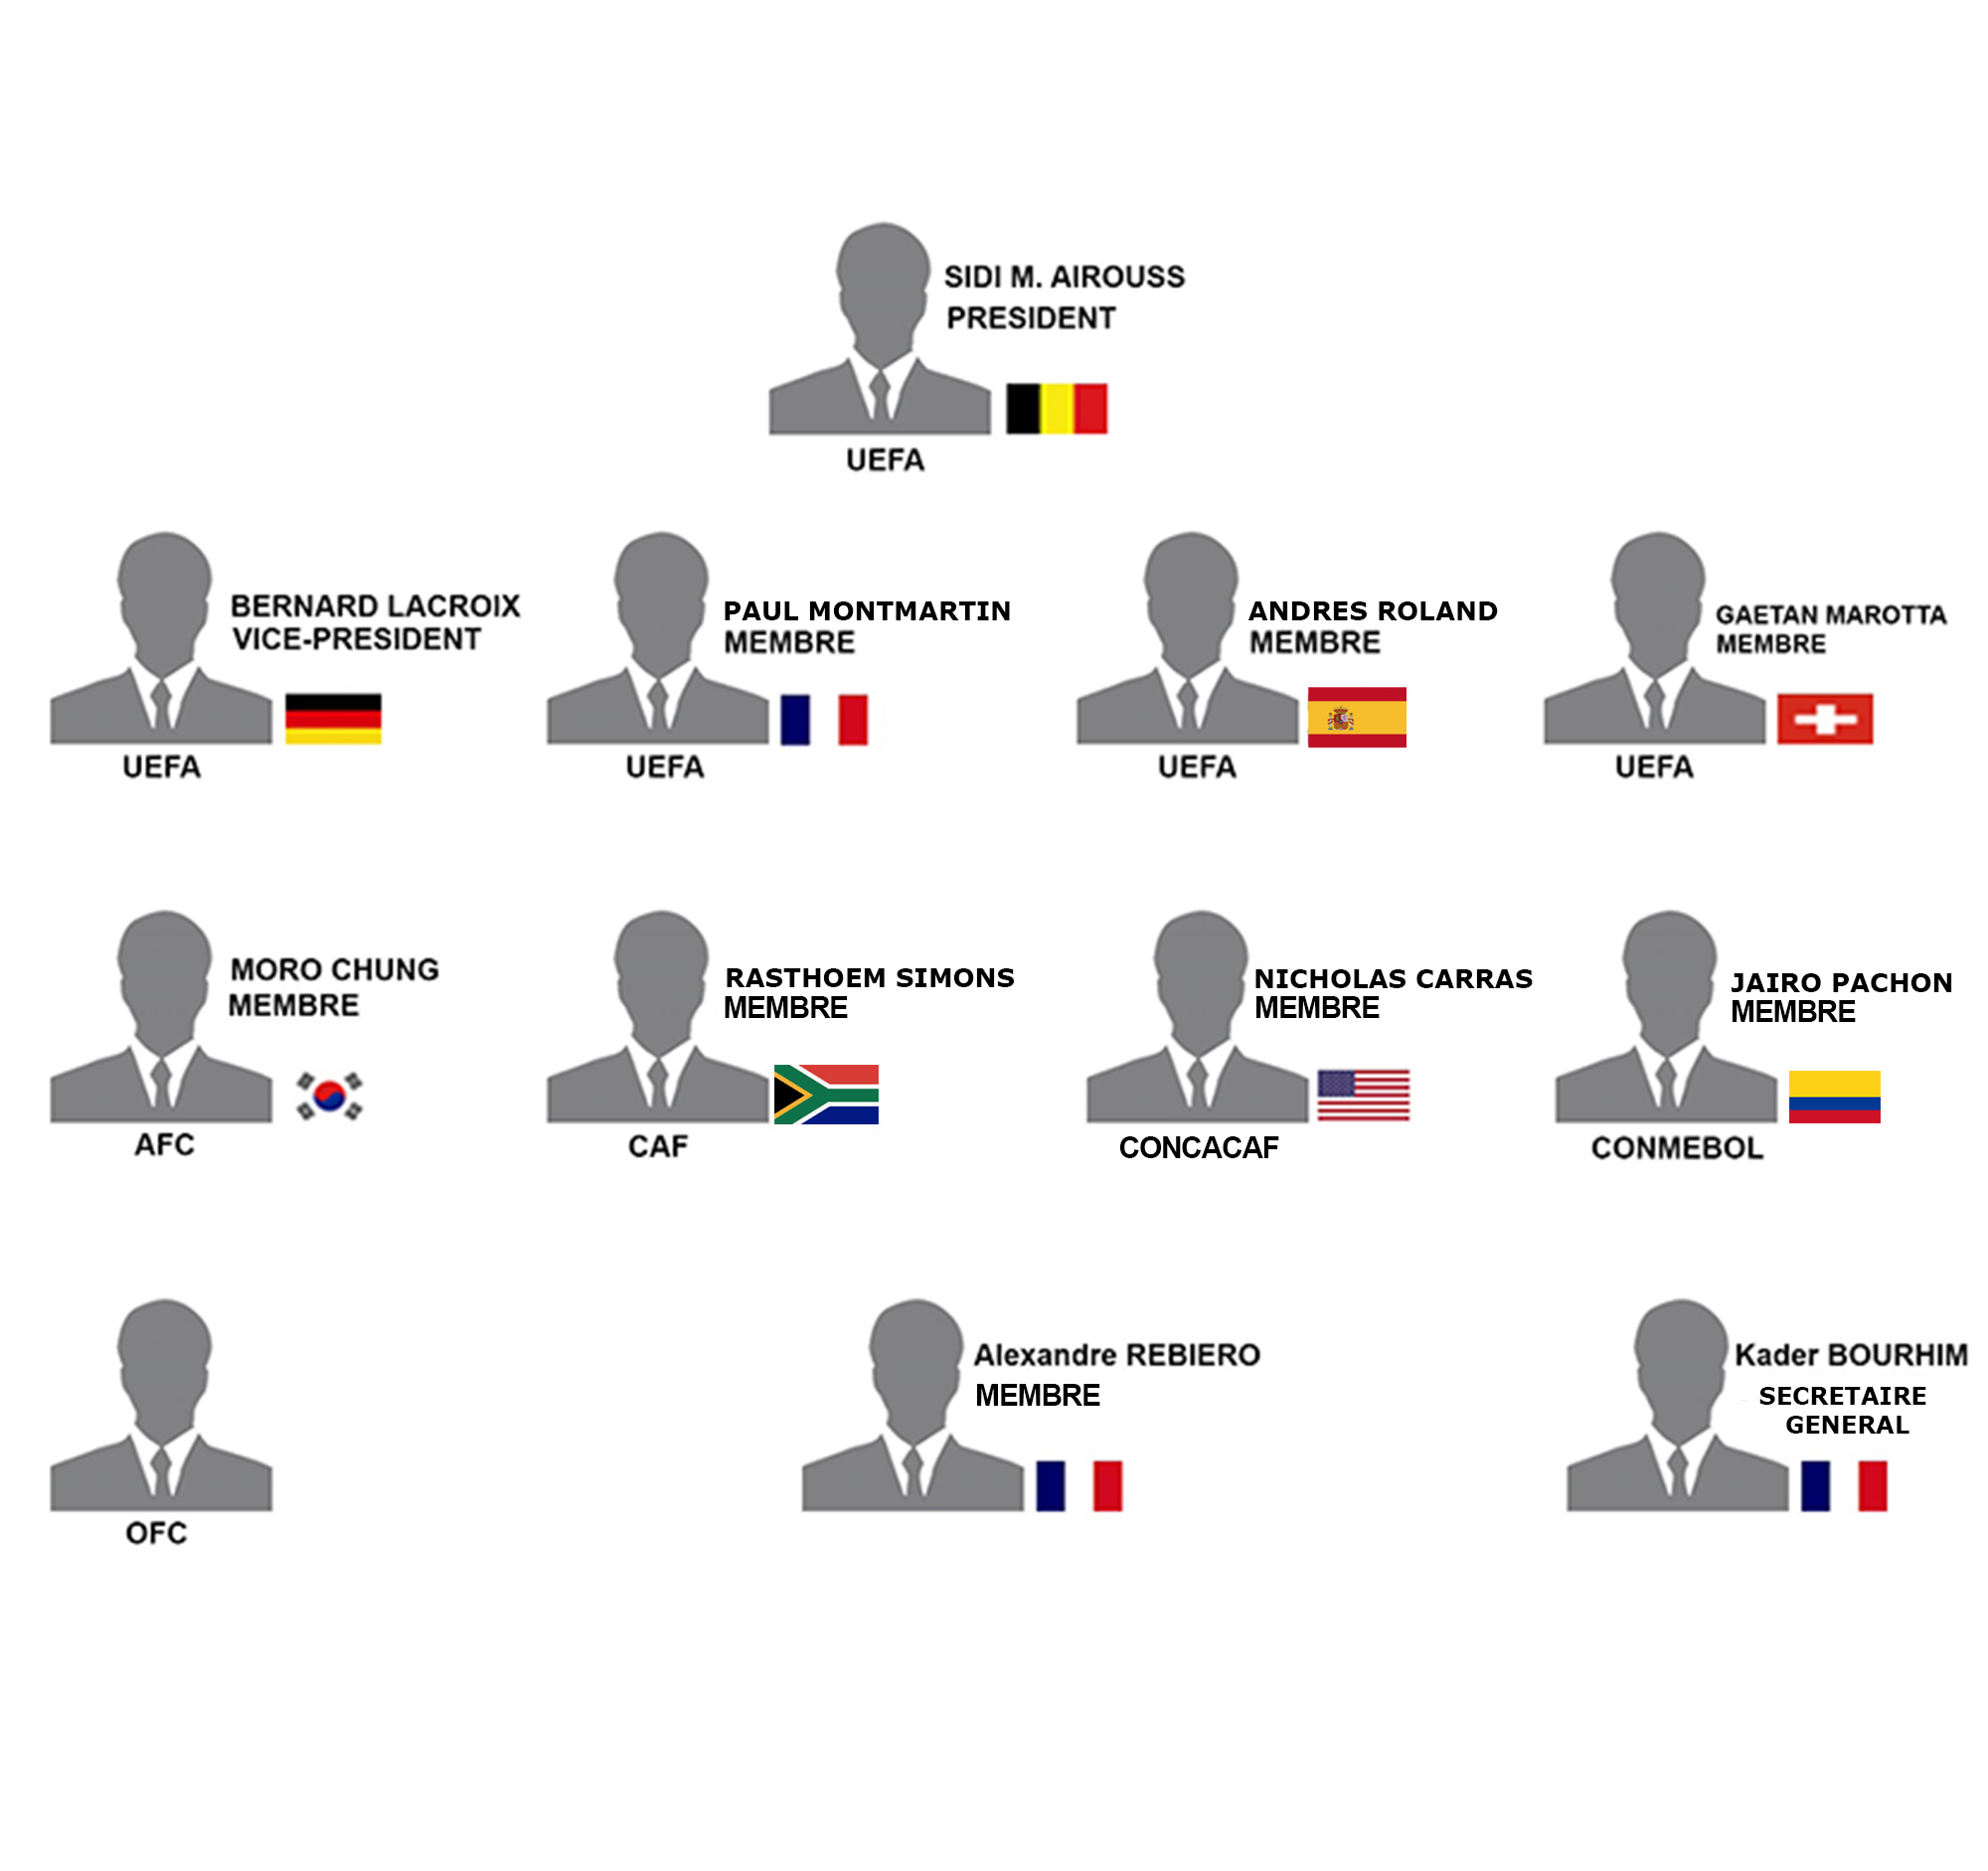 Fifma fdration internationale de fifa match agents the term of the mandate of the executive committee members is 4 years it began in 2012 and will end in 2016 renewable the interval separating two pooptronica Image collections